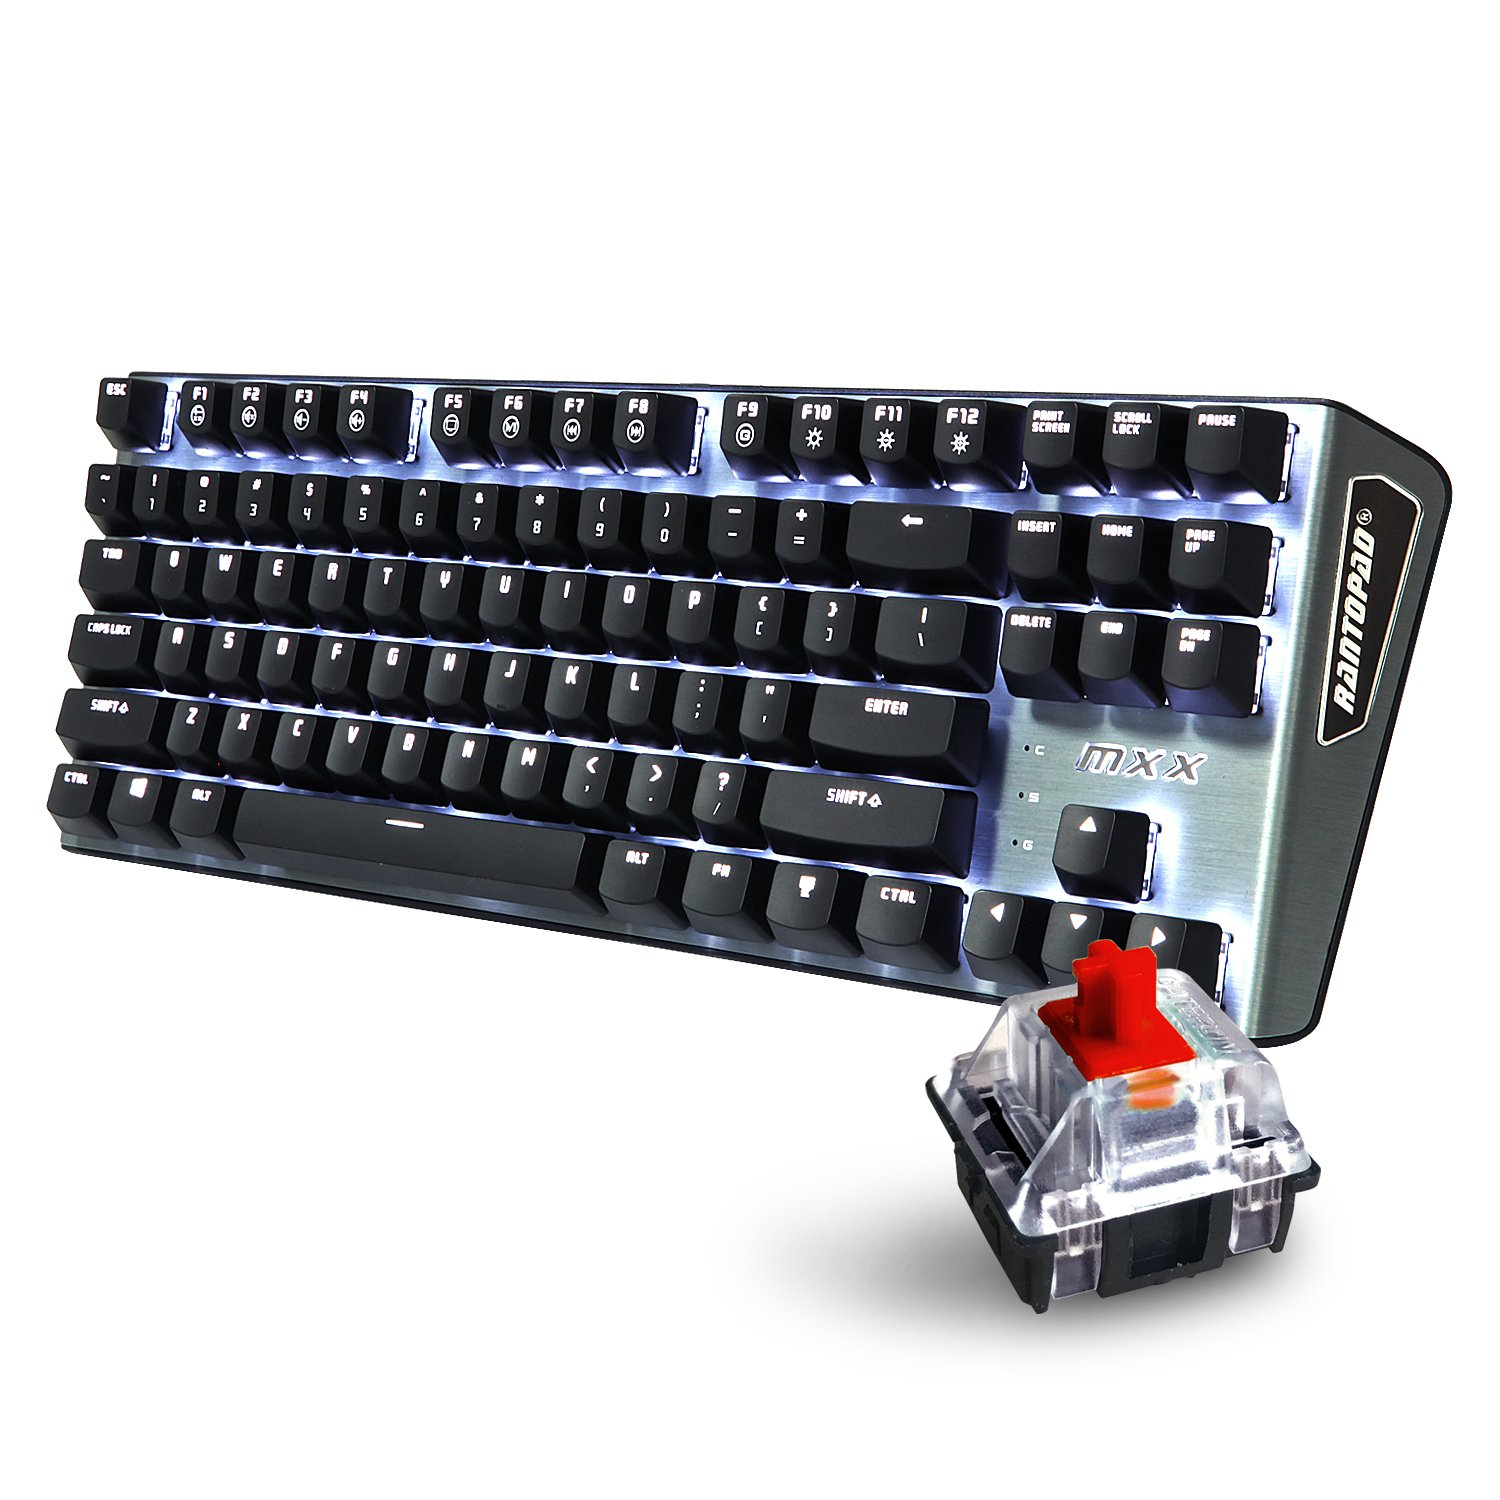 Amazon mechanical keyboard - Amazon Com Rantopad Mxx Mechanical Gaming Keyboard 87 Keys White Backlit Red Switches Grey Aluminum Cover N Key Rollover Computers Accessories